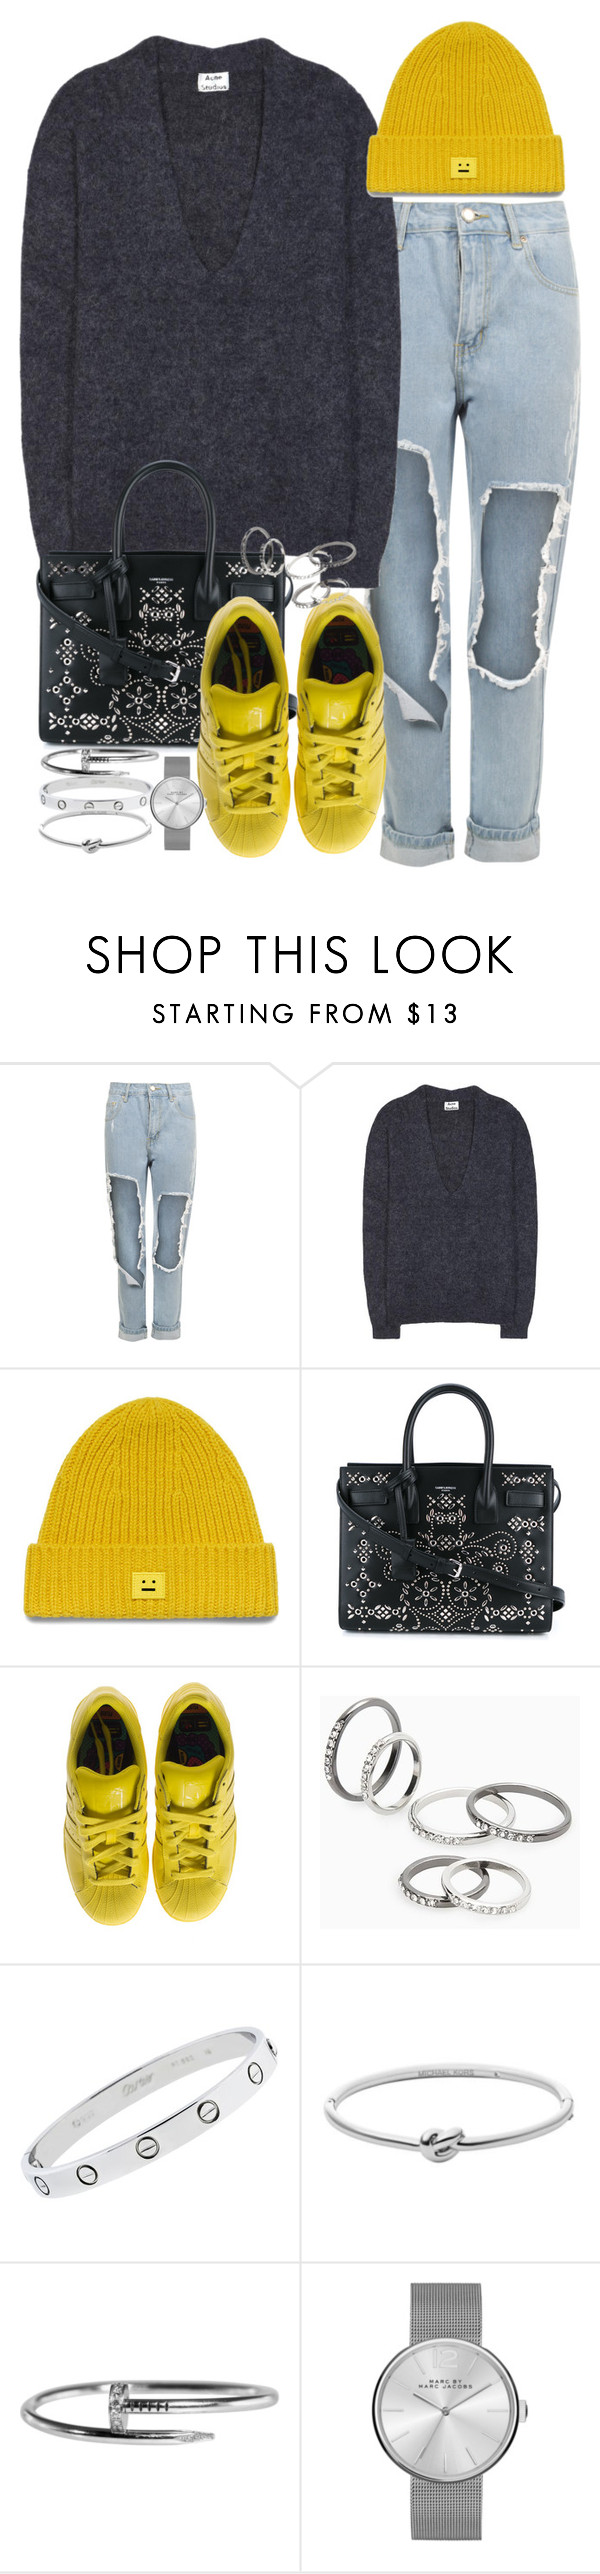 """""""Sin título #3981"""" by hellomissapple ❤ liked on Polyvore featuring WearAll, Acne Studios, Yves Saint Laurent, adidas, MANGO, Cartier, Michael Kors and Marc by Marc Jacobs"""